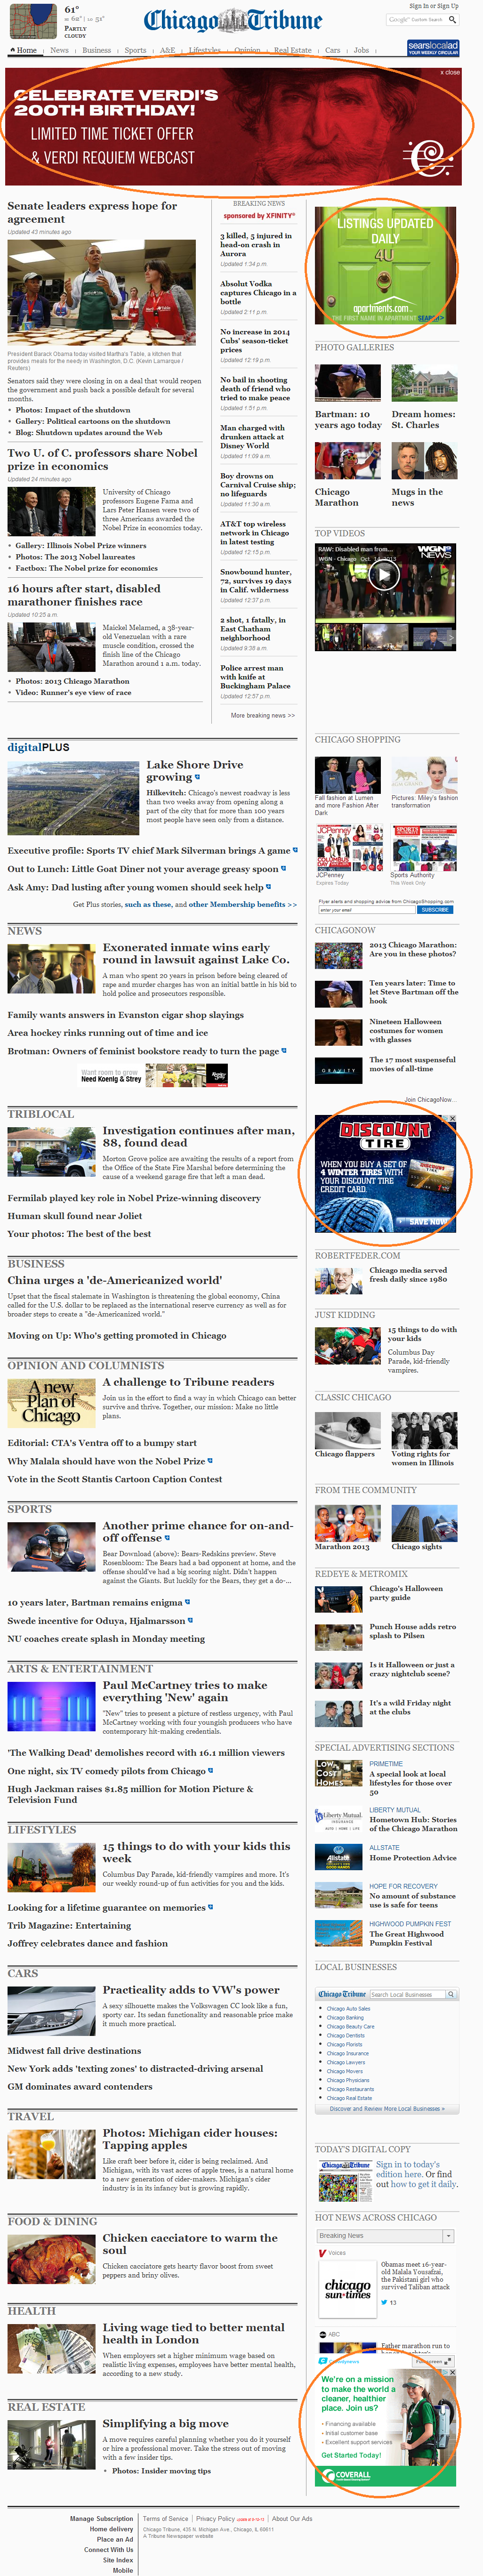 Standard Ad Units on Chicago Tribune